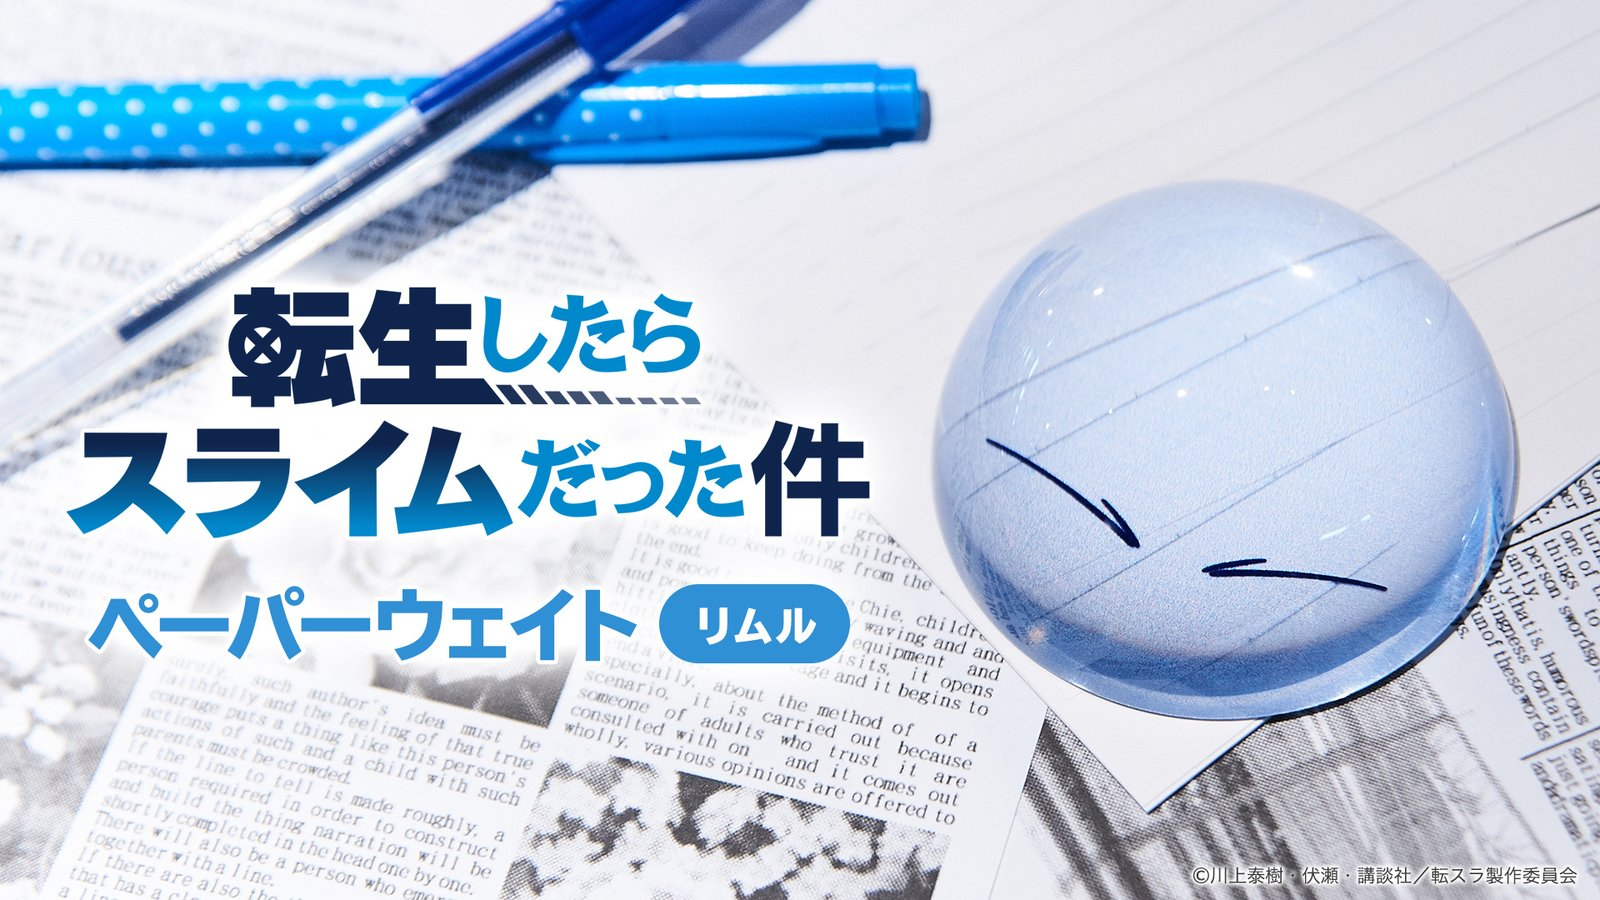 TOM Project Transforms Rimuru From Slime to Paperweight! | Tokyo